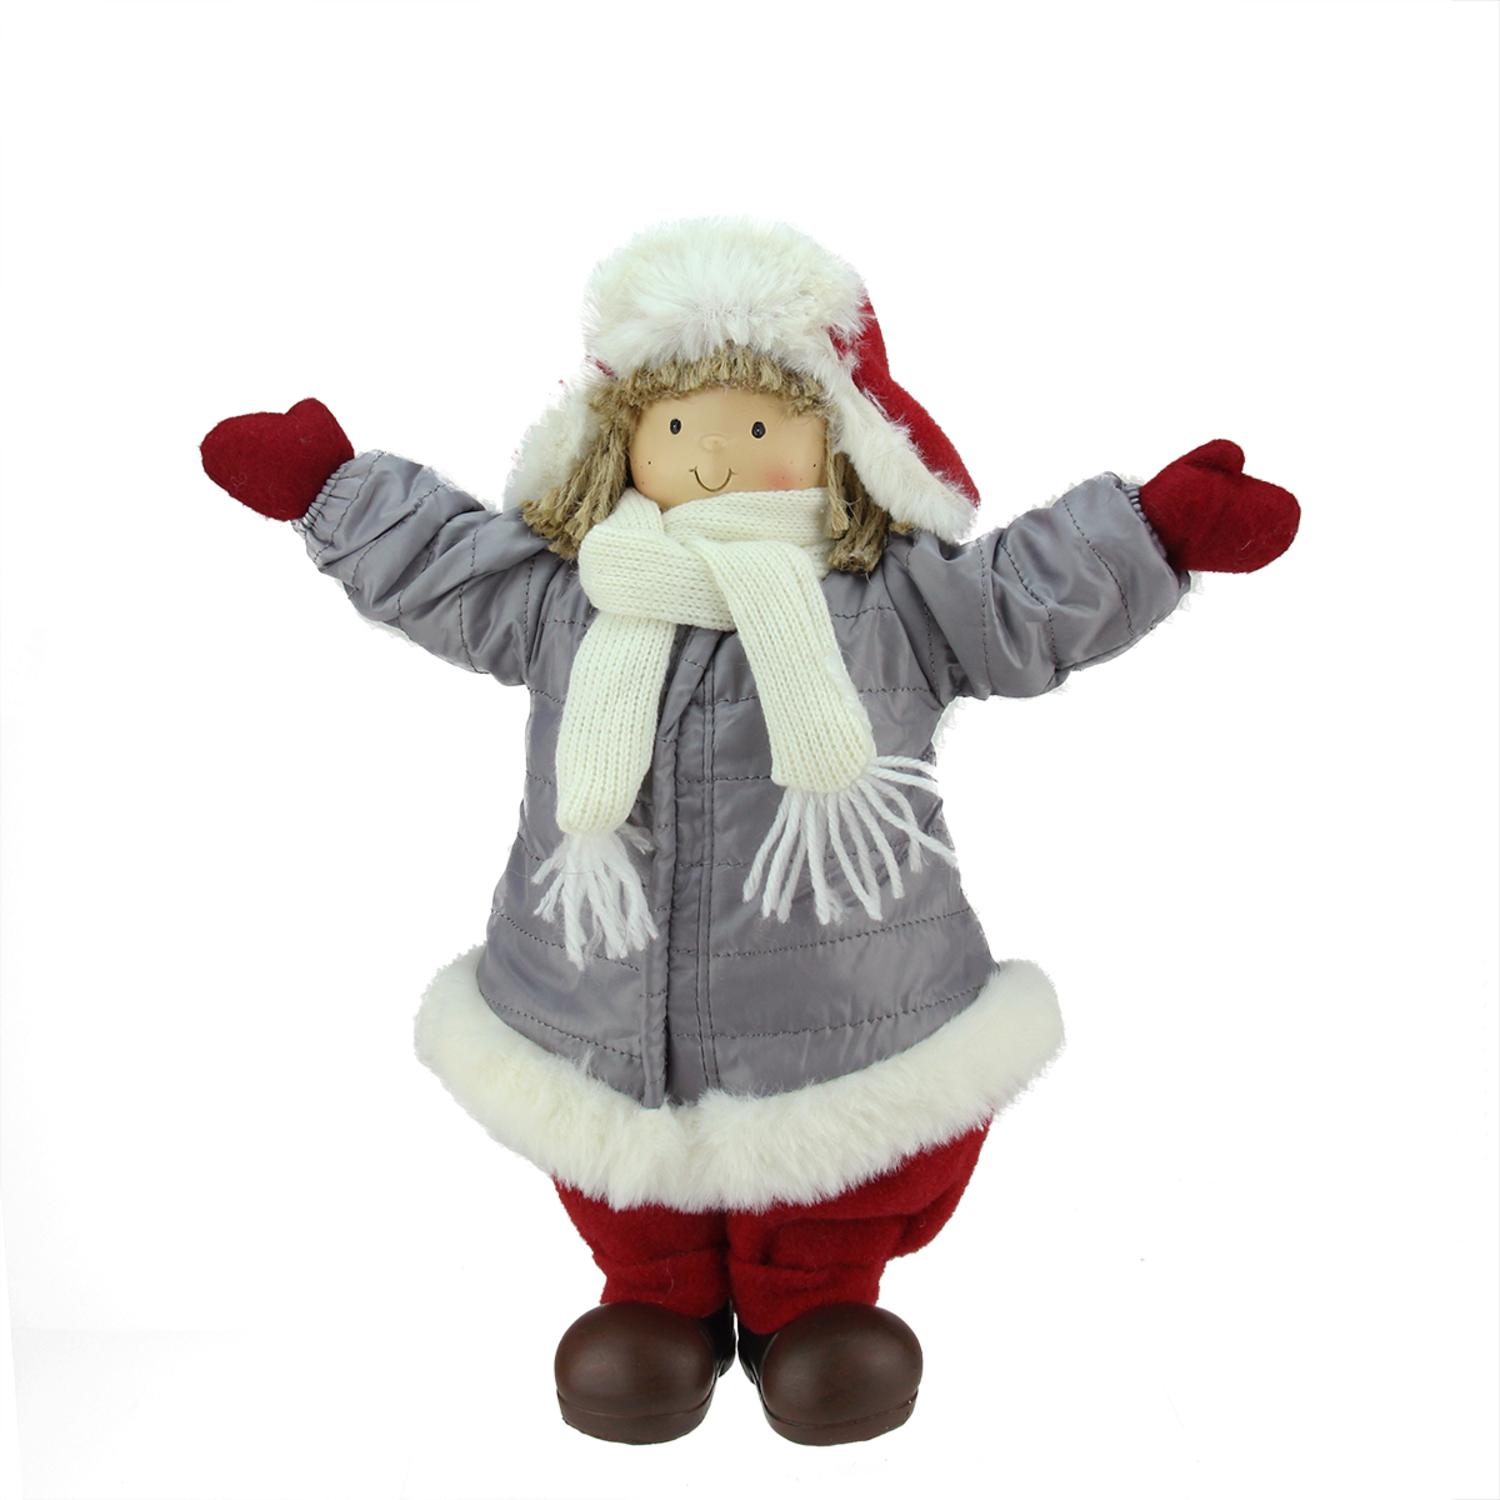 ''12.25'''' Cheerful Young Boy Gnome in Gray Puffy Winter Coat and RED HAT Christmas Decoration''